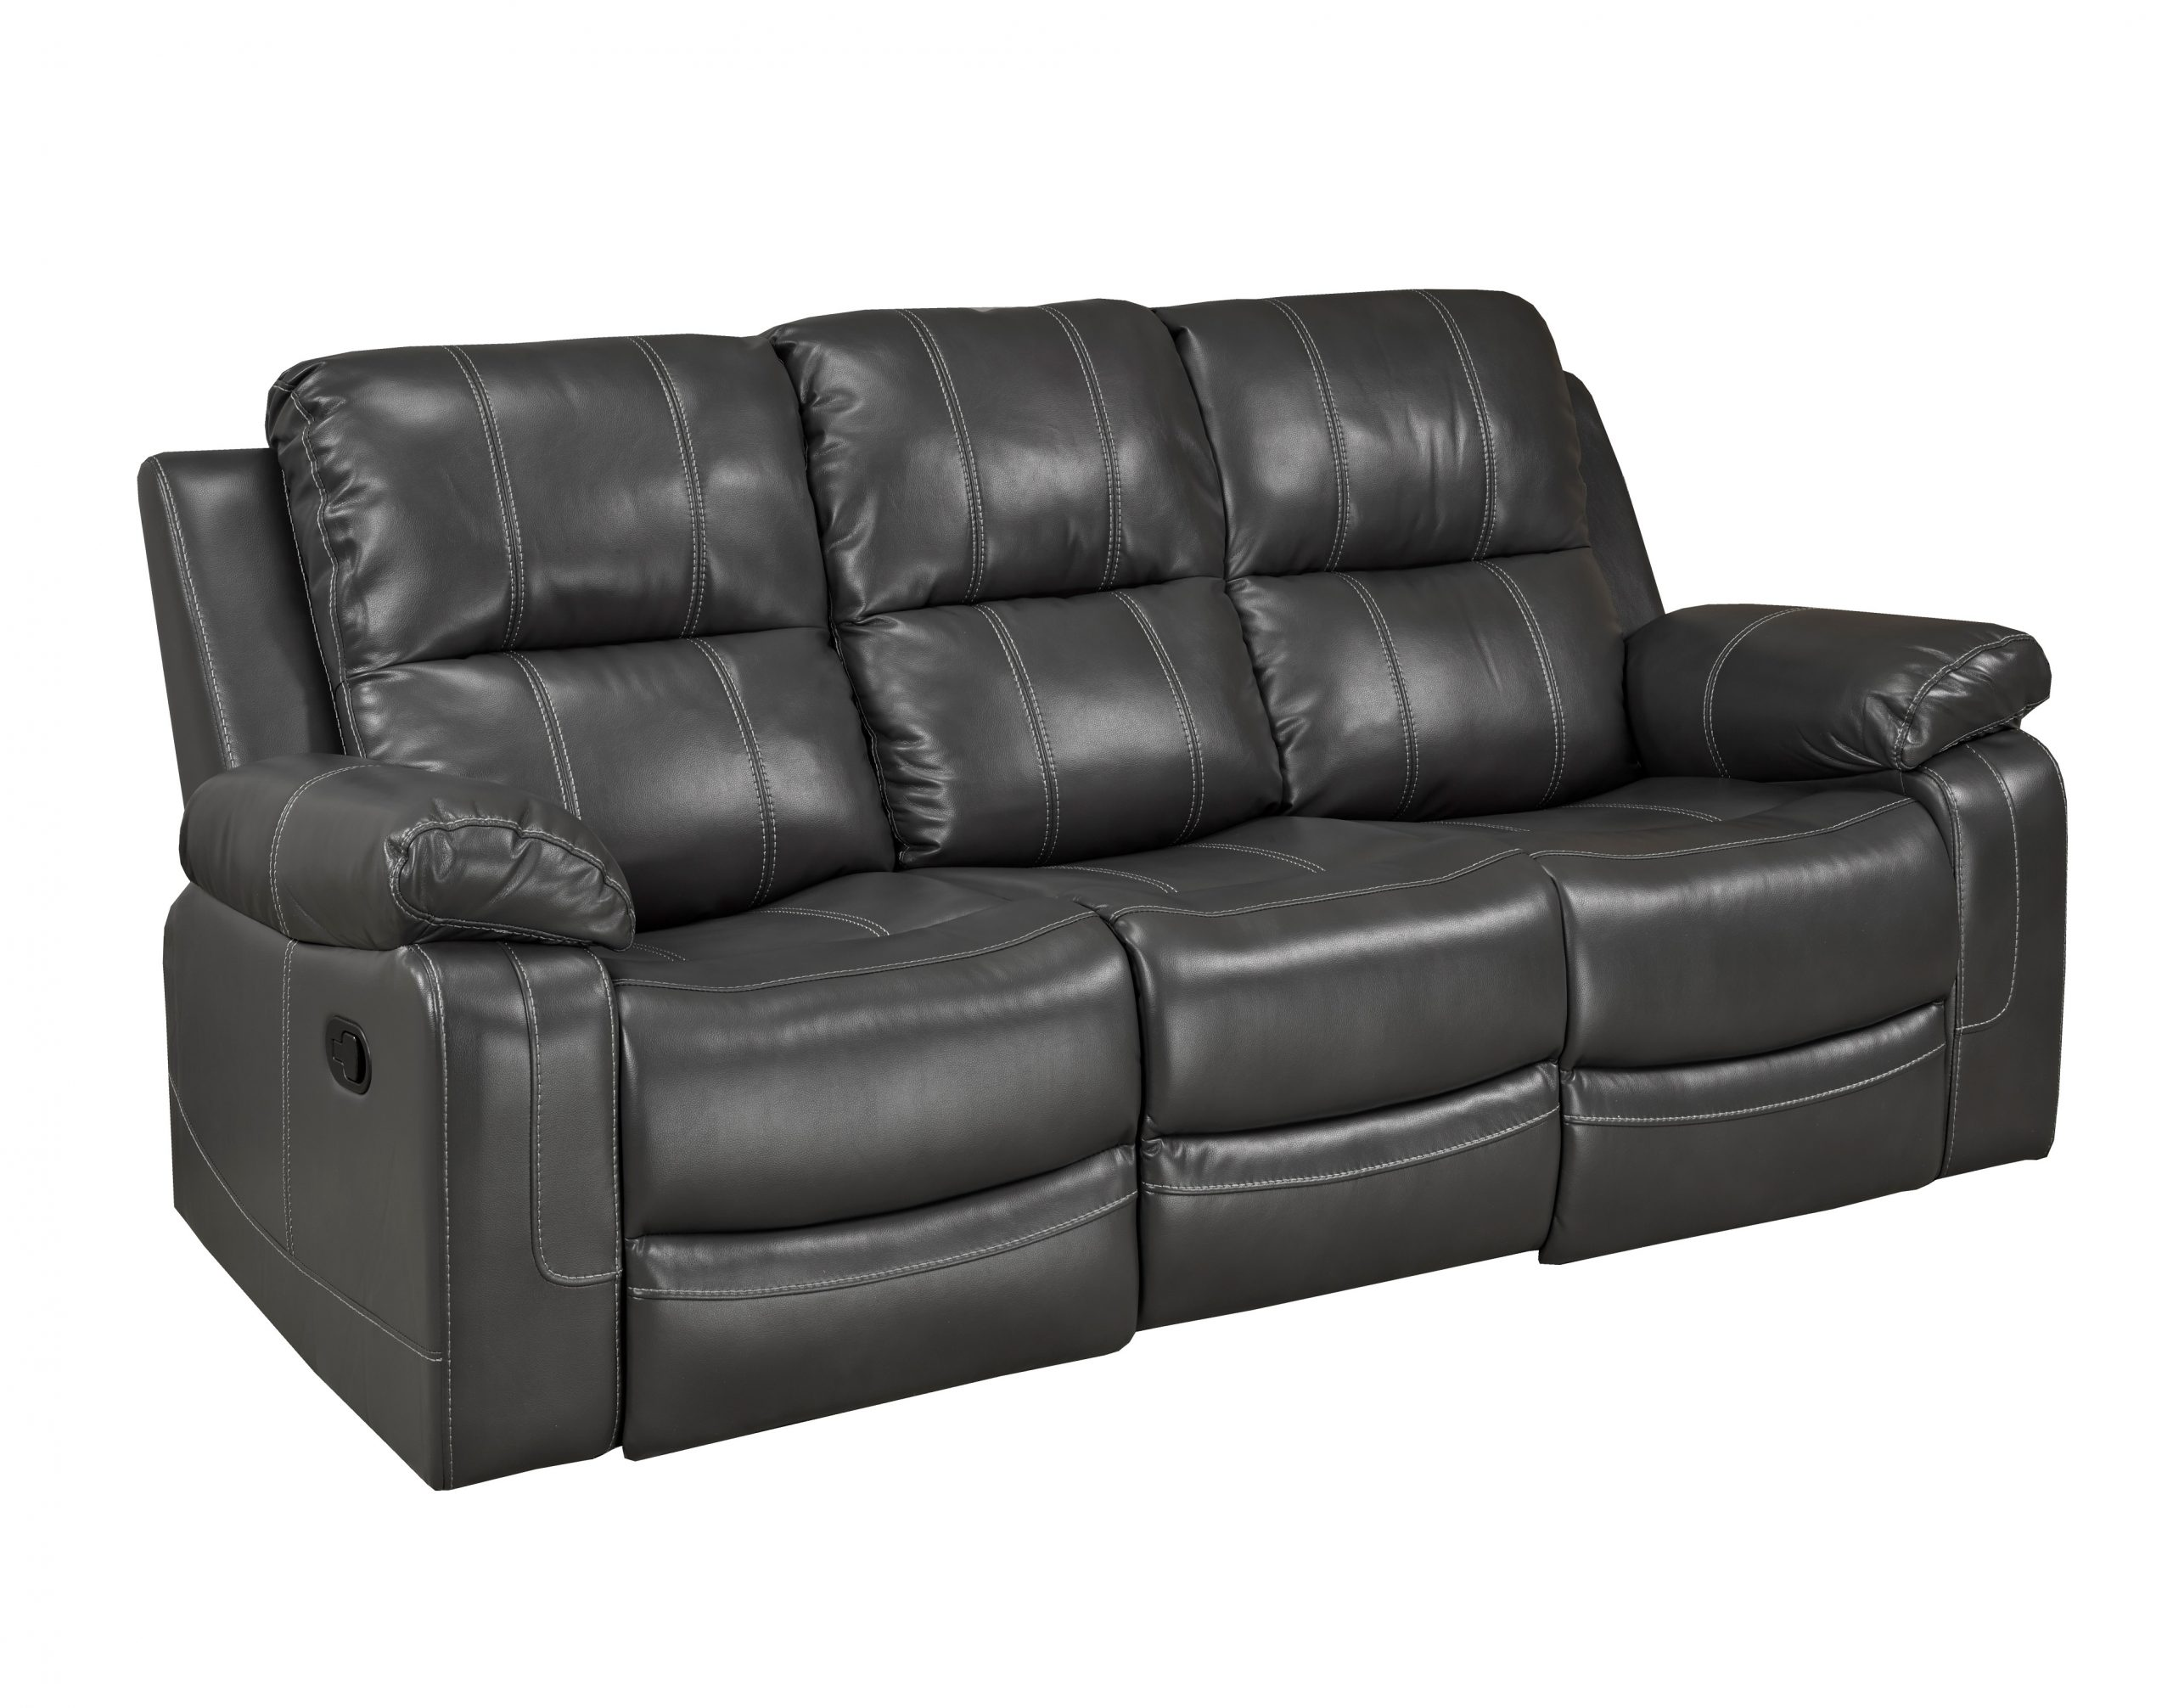 Pick The Furniture From Online Furniture Stores Canada